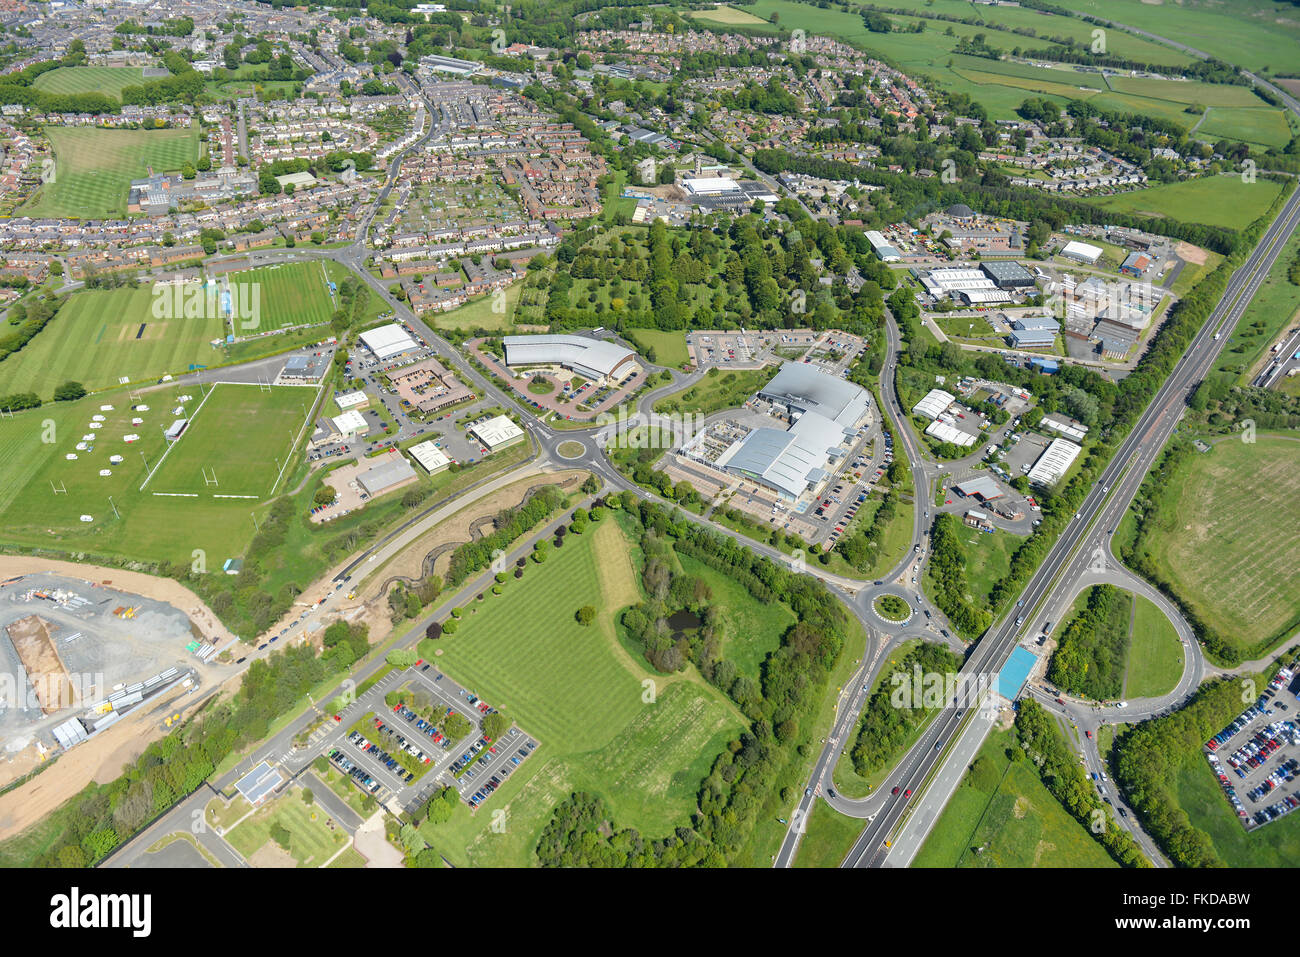 An aerial view of the commercial areas of Alnwick, Northumberland - Stock Image